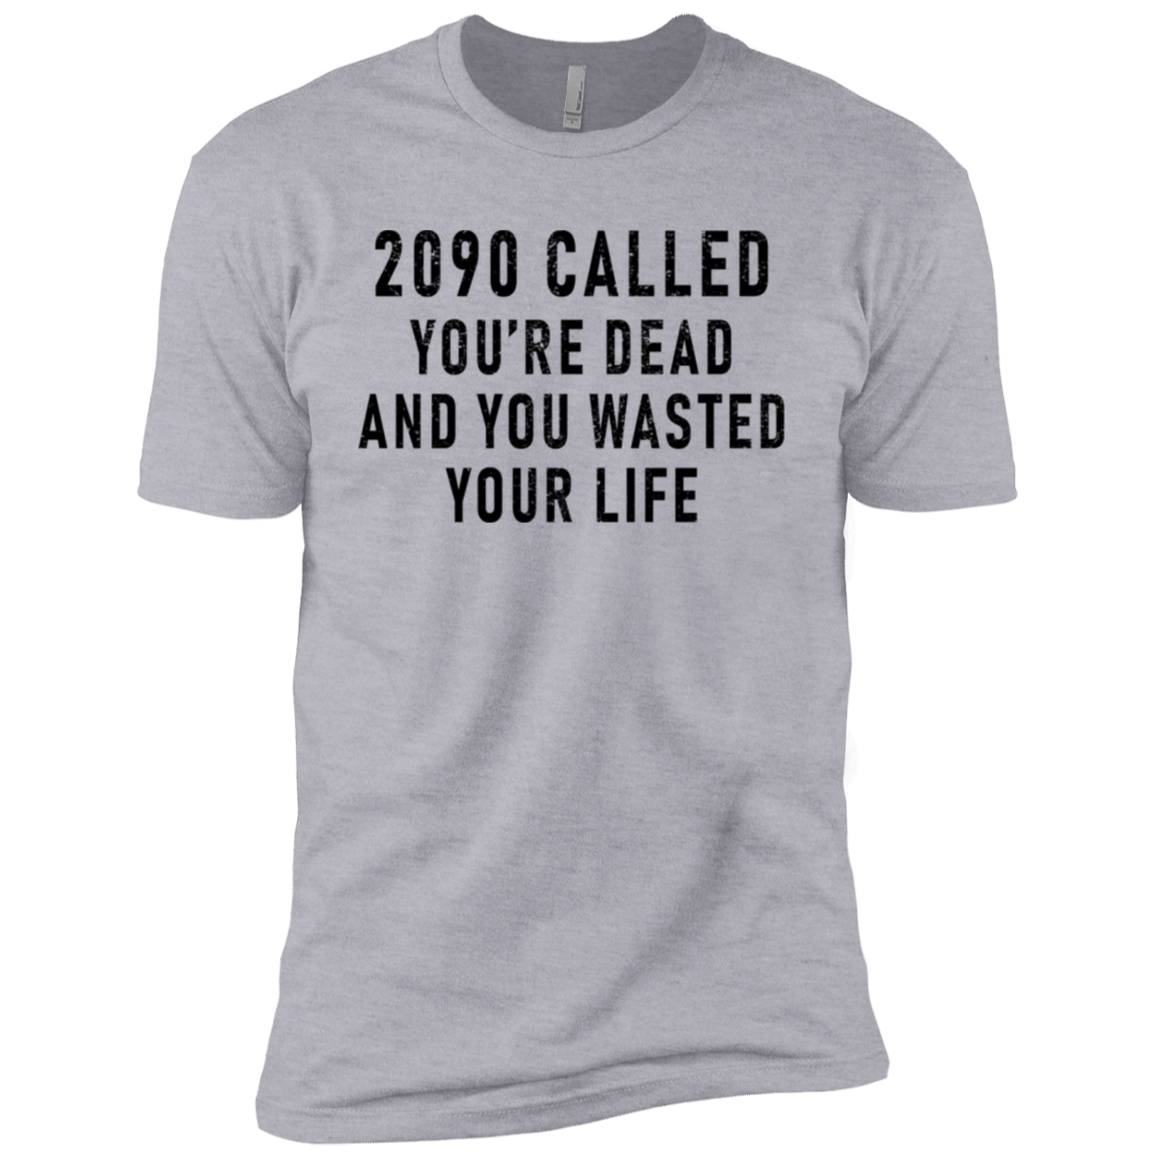 2090 Called You're Dead And You Wasted Your Life Men's Classic Tee